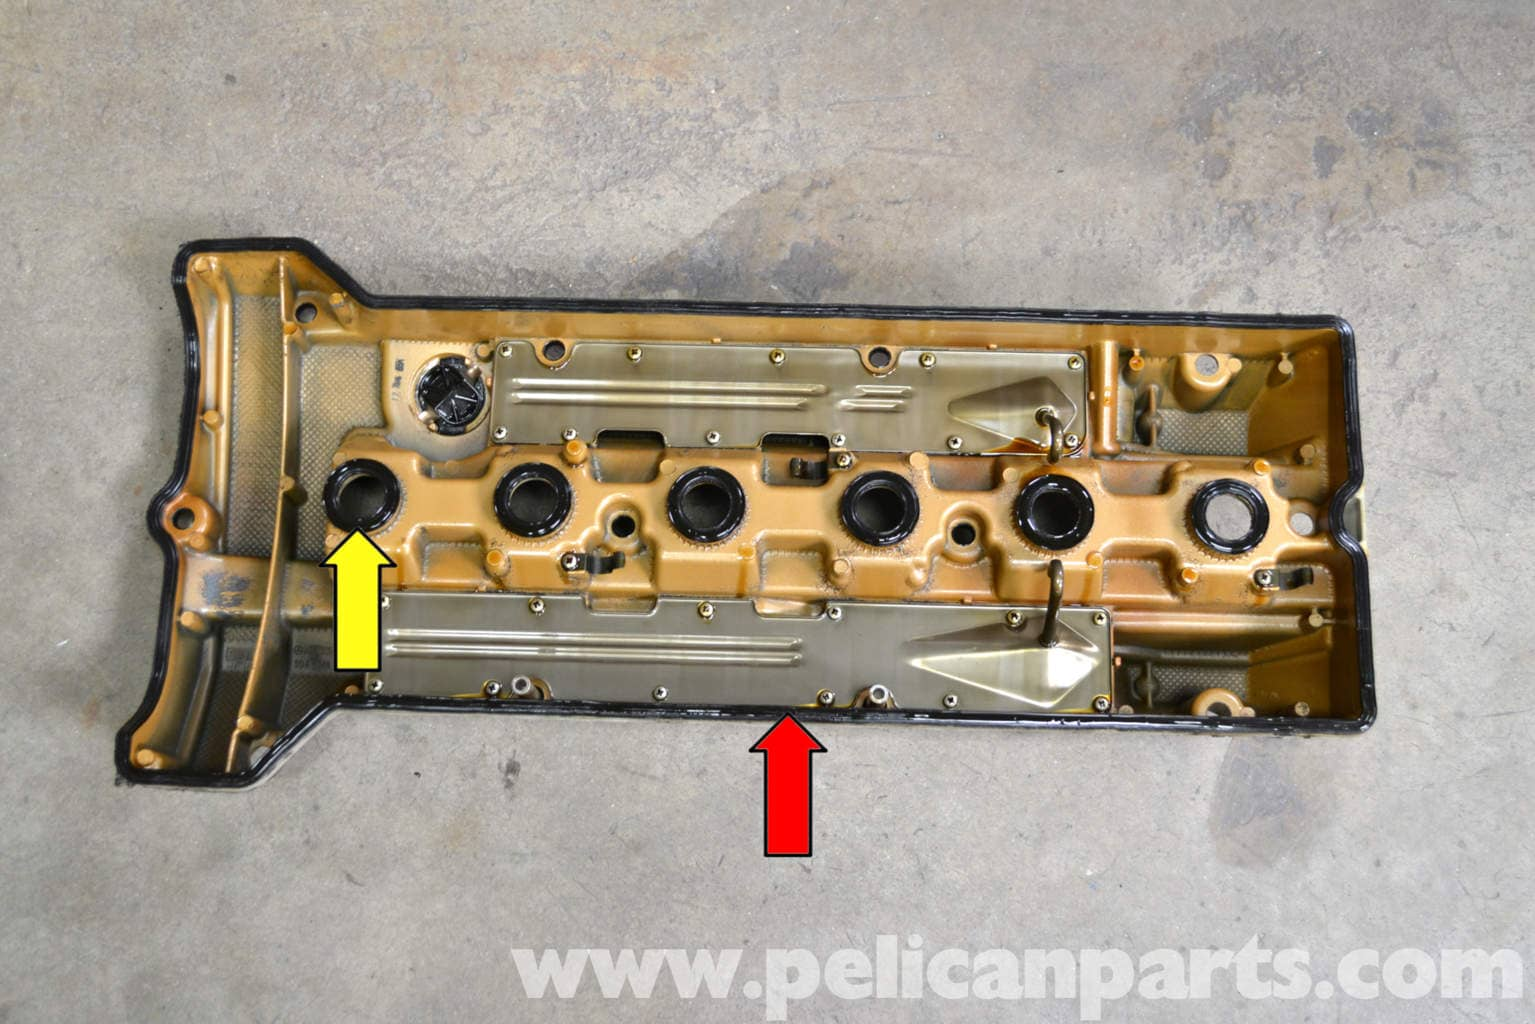 Mercedes Replacement Parts >> Mercedes-Benz W124 Valve Cover Gasket Replacement | 1986-1995 E-Class | Pelican Parts DIY ...